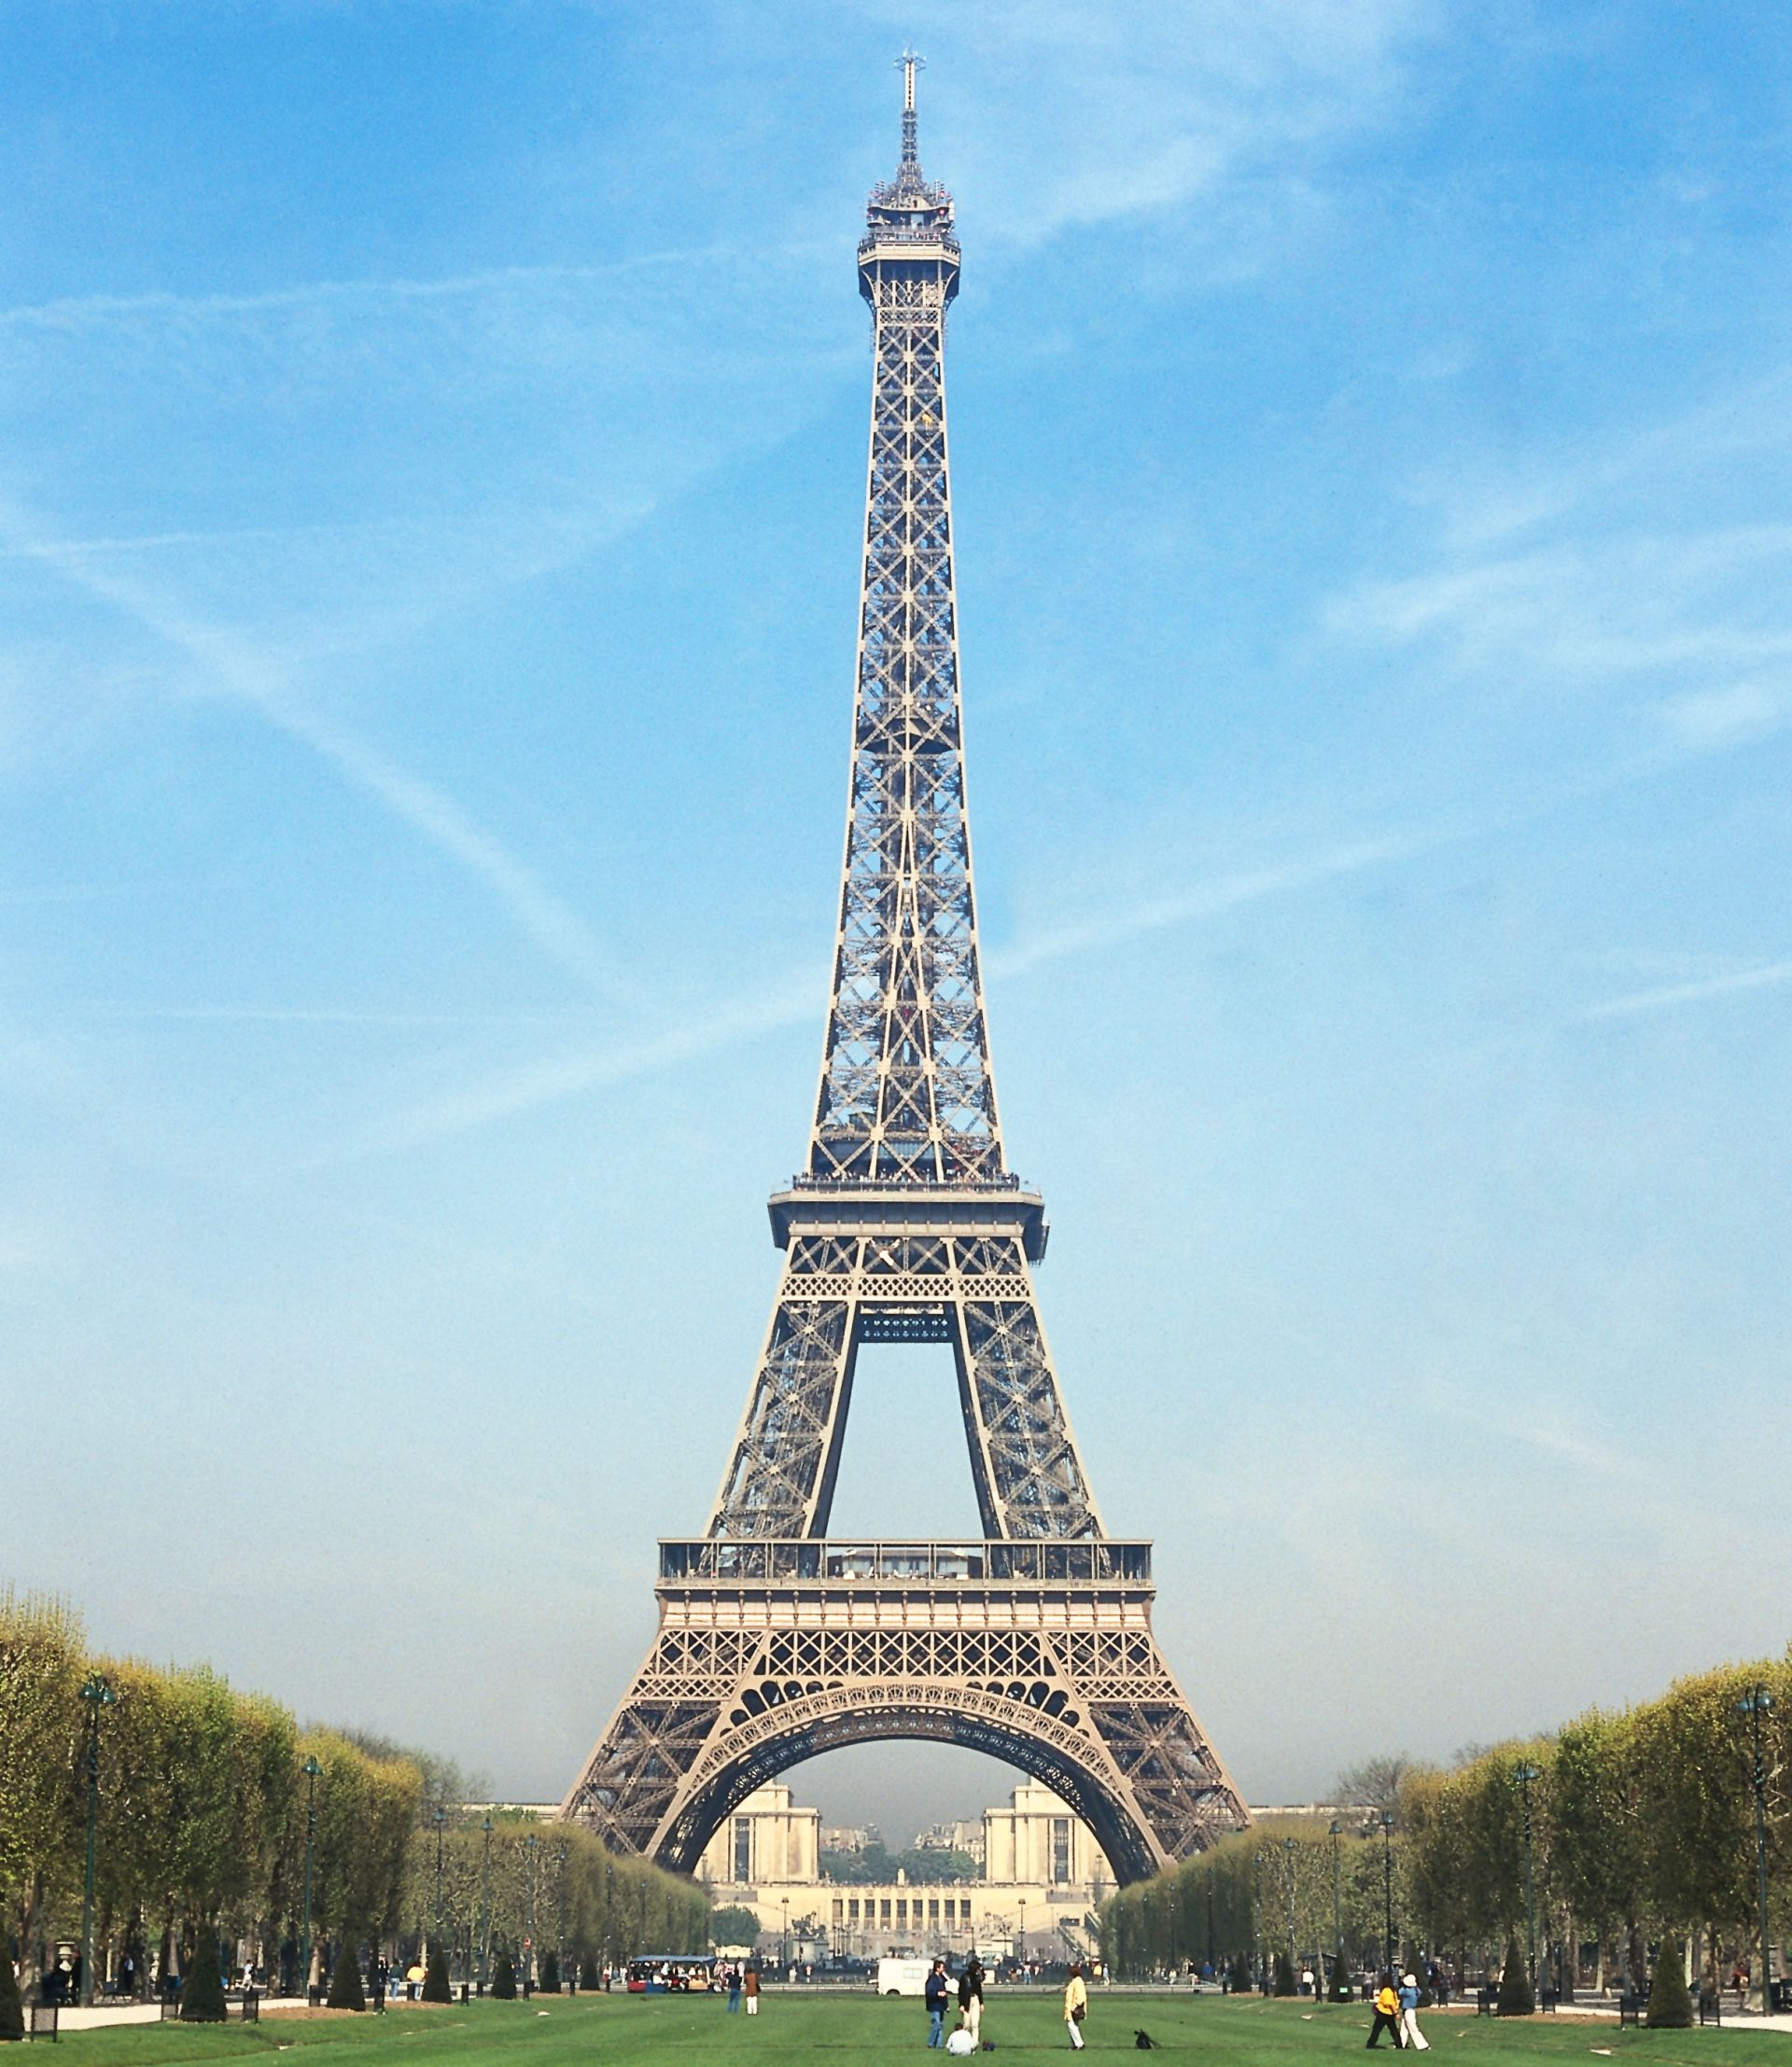 Eiffel Tower Facts | Eiffel Tower For Kids | DK Find Out